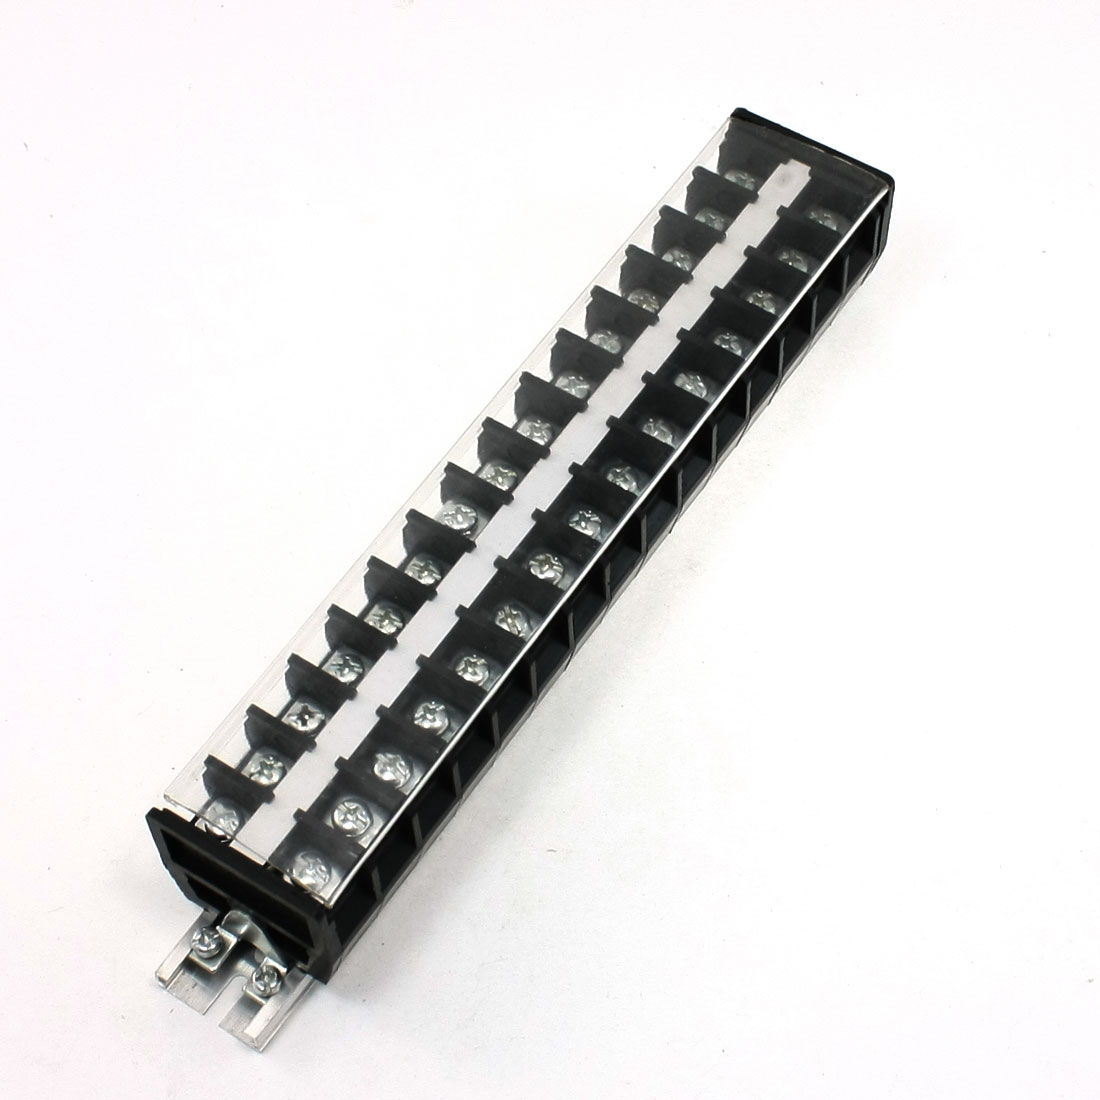 660V 30A 15 Positions Rail Mount Covered Screw Terminal Block TD-3015